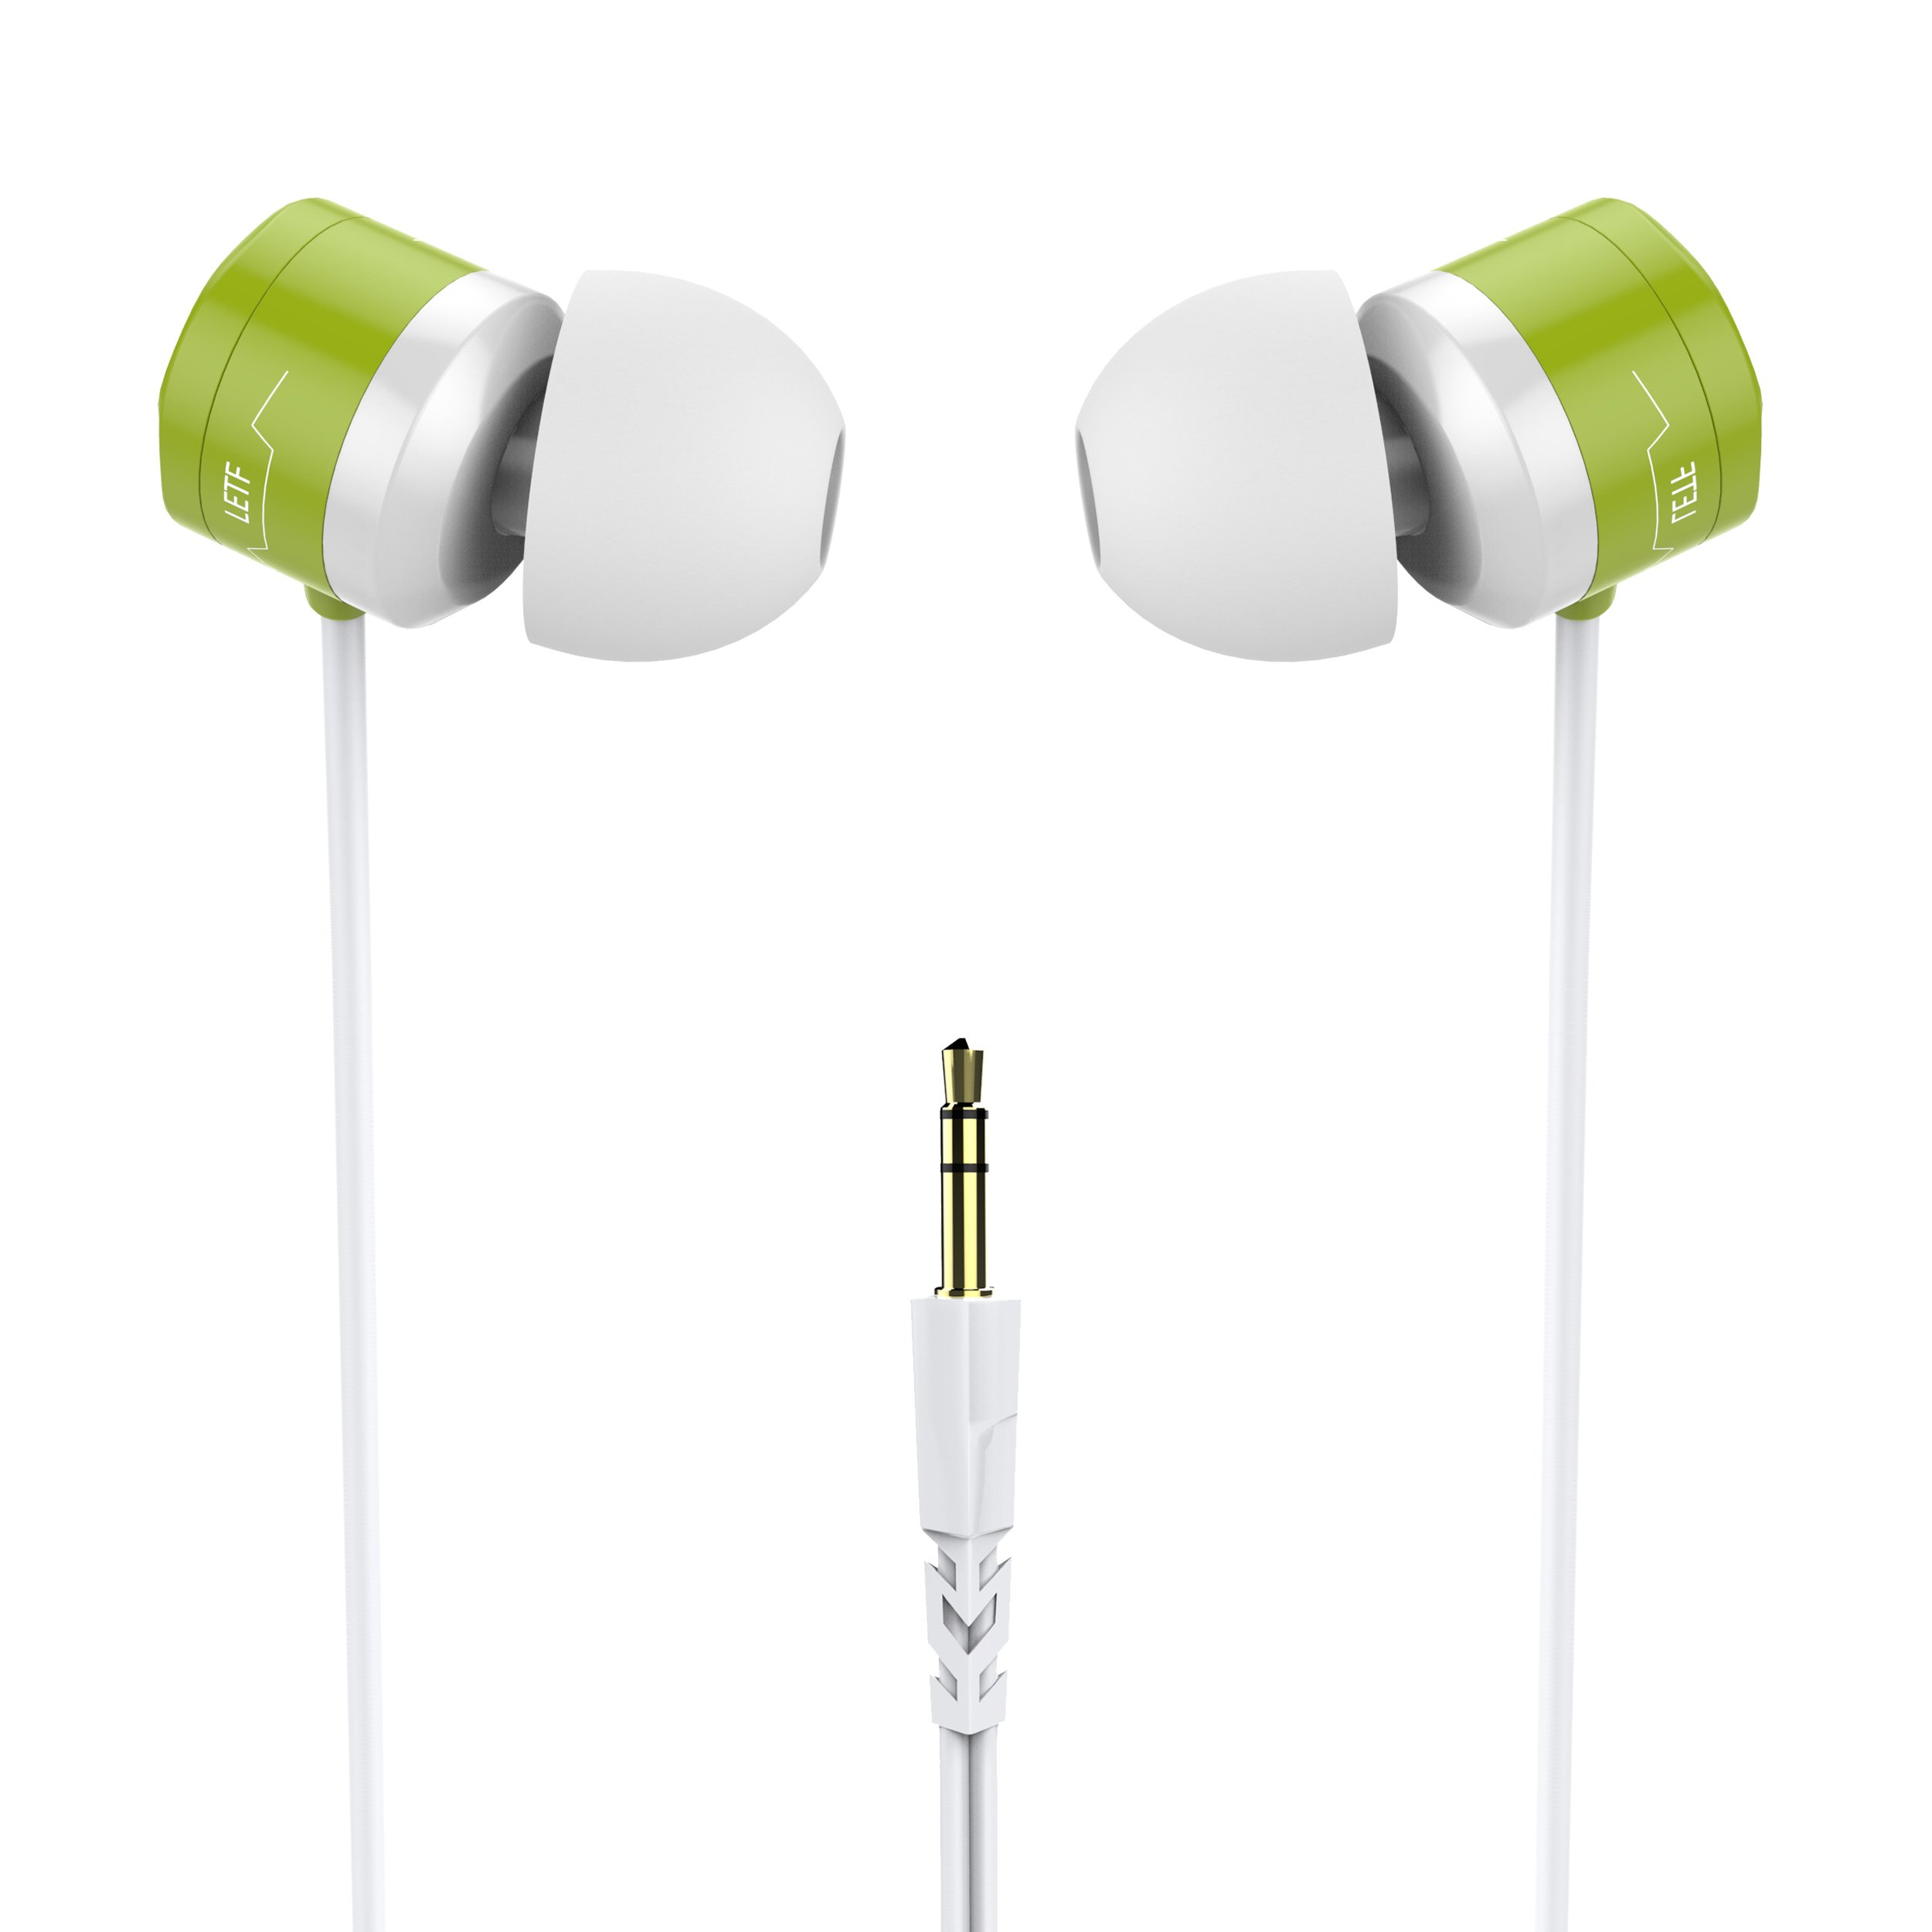 5e46b035539 In Ear Earphones, USTEK WP-593 Earbuds Wired Headphones Waterproof IPX7  Compatible with All